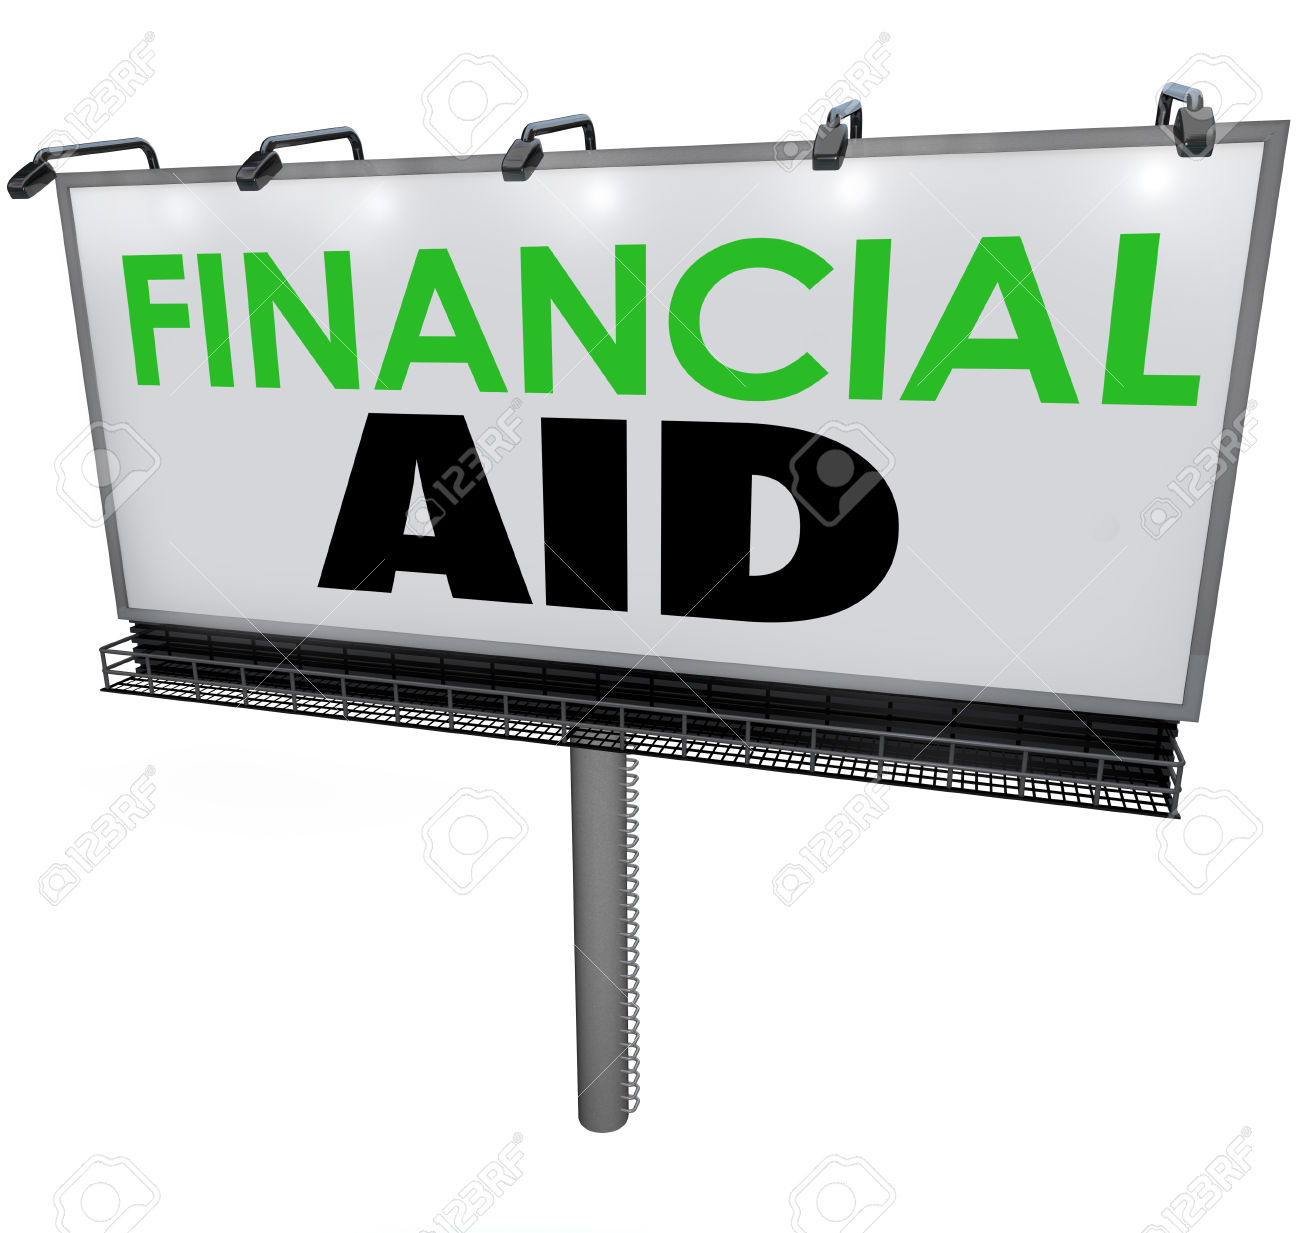 39810076-Financial-Aid-words-on-a-billboard-banner-or-sign-advertising-help-or-assistance-in-paying-for-colle-Stock-Photo.jpg